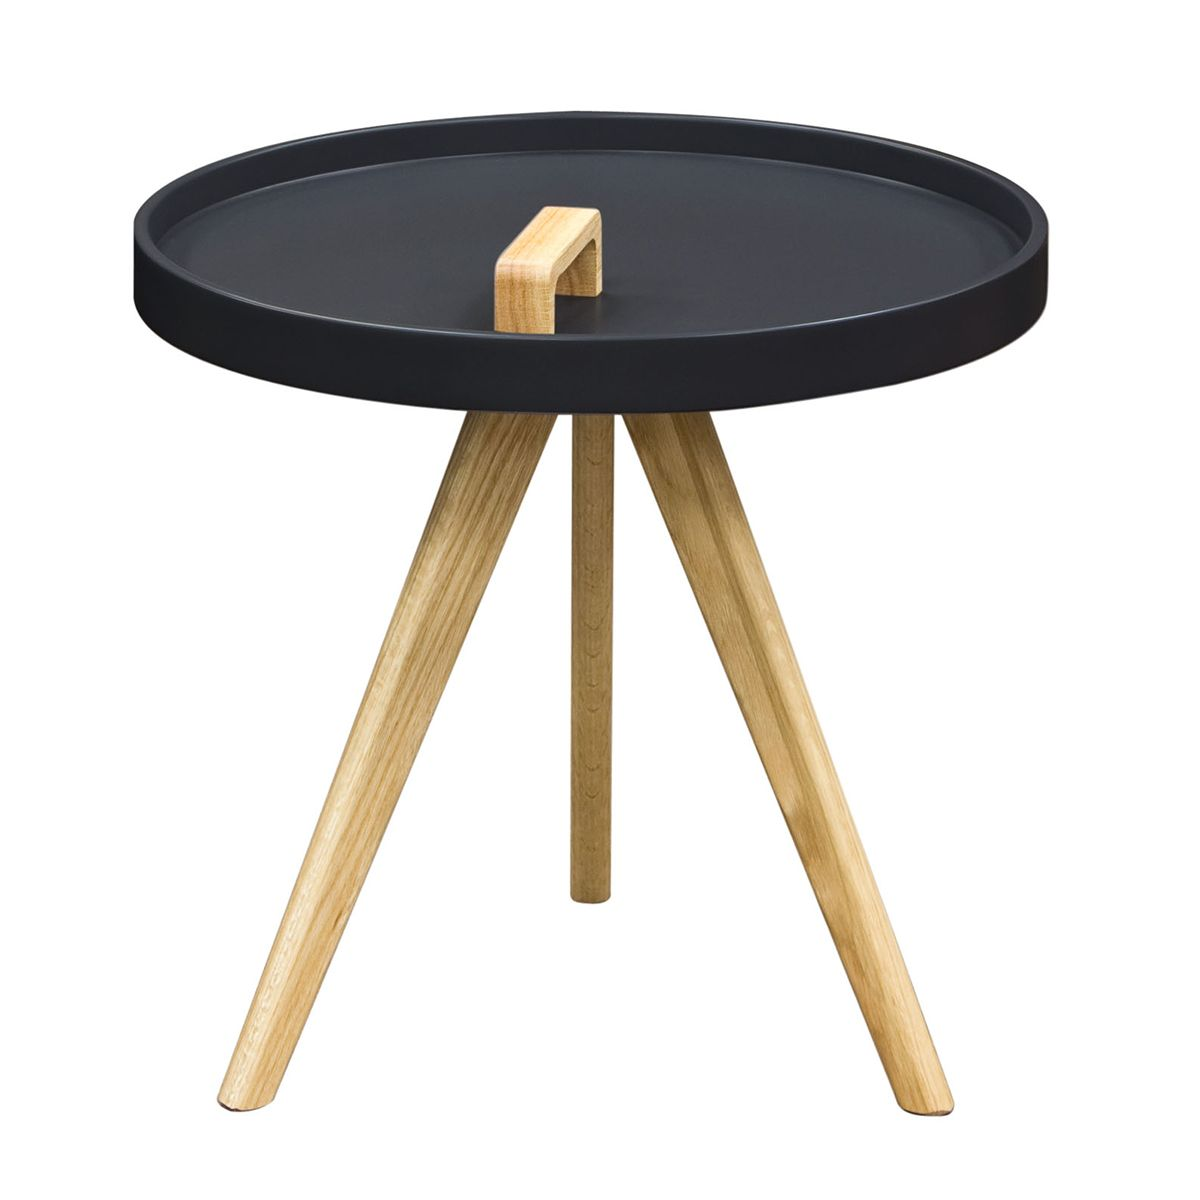 Diamond Sofa Mobi Accent Round Tray Table W/ Matte Black Lacquer Top U0026 Oak  Tipod Legs